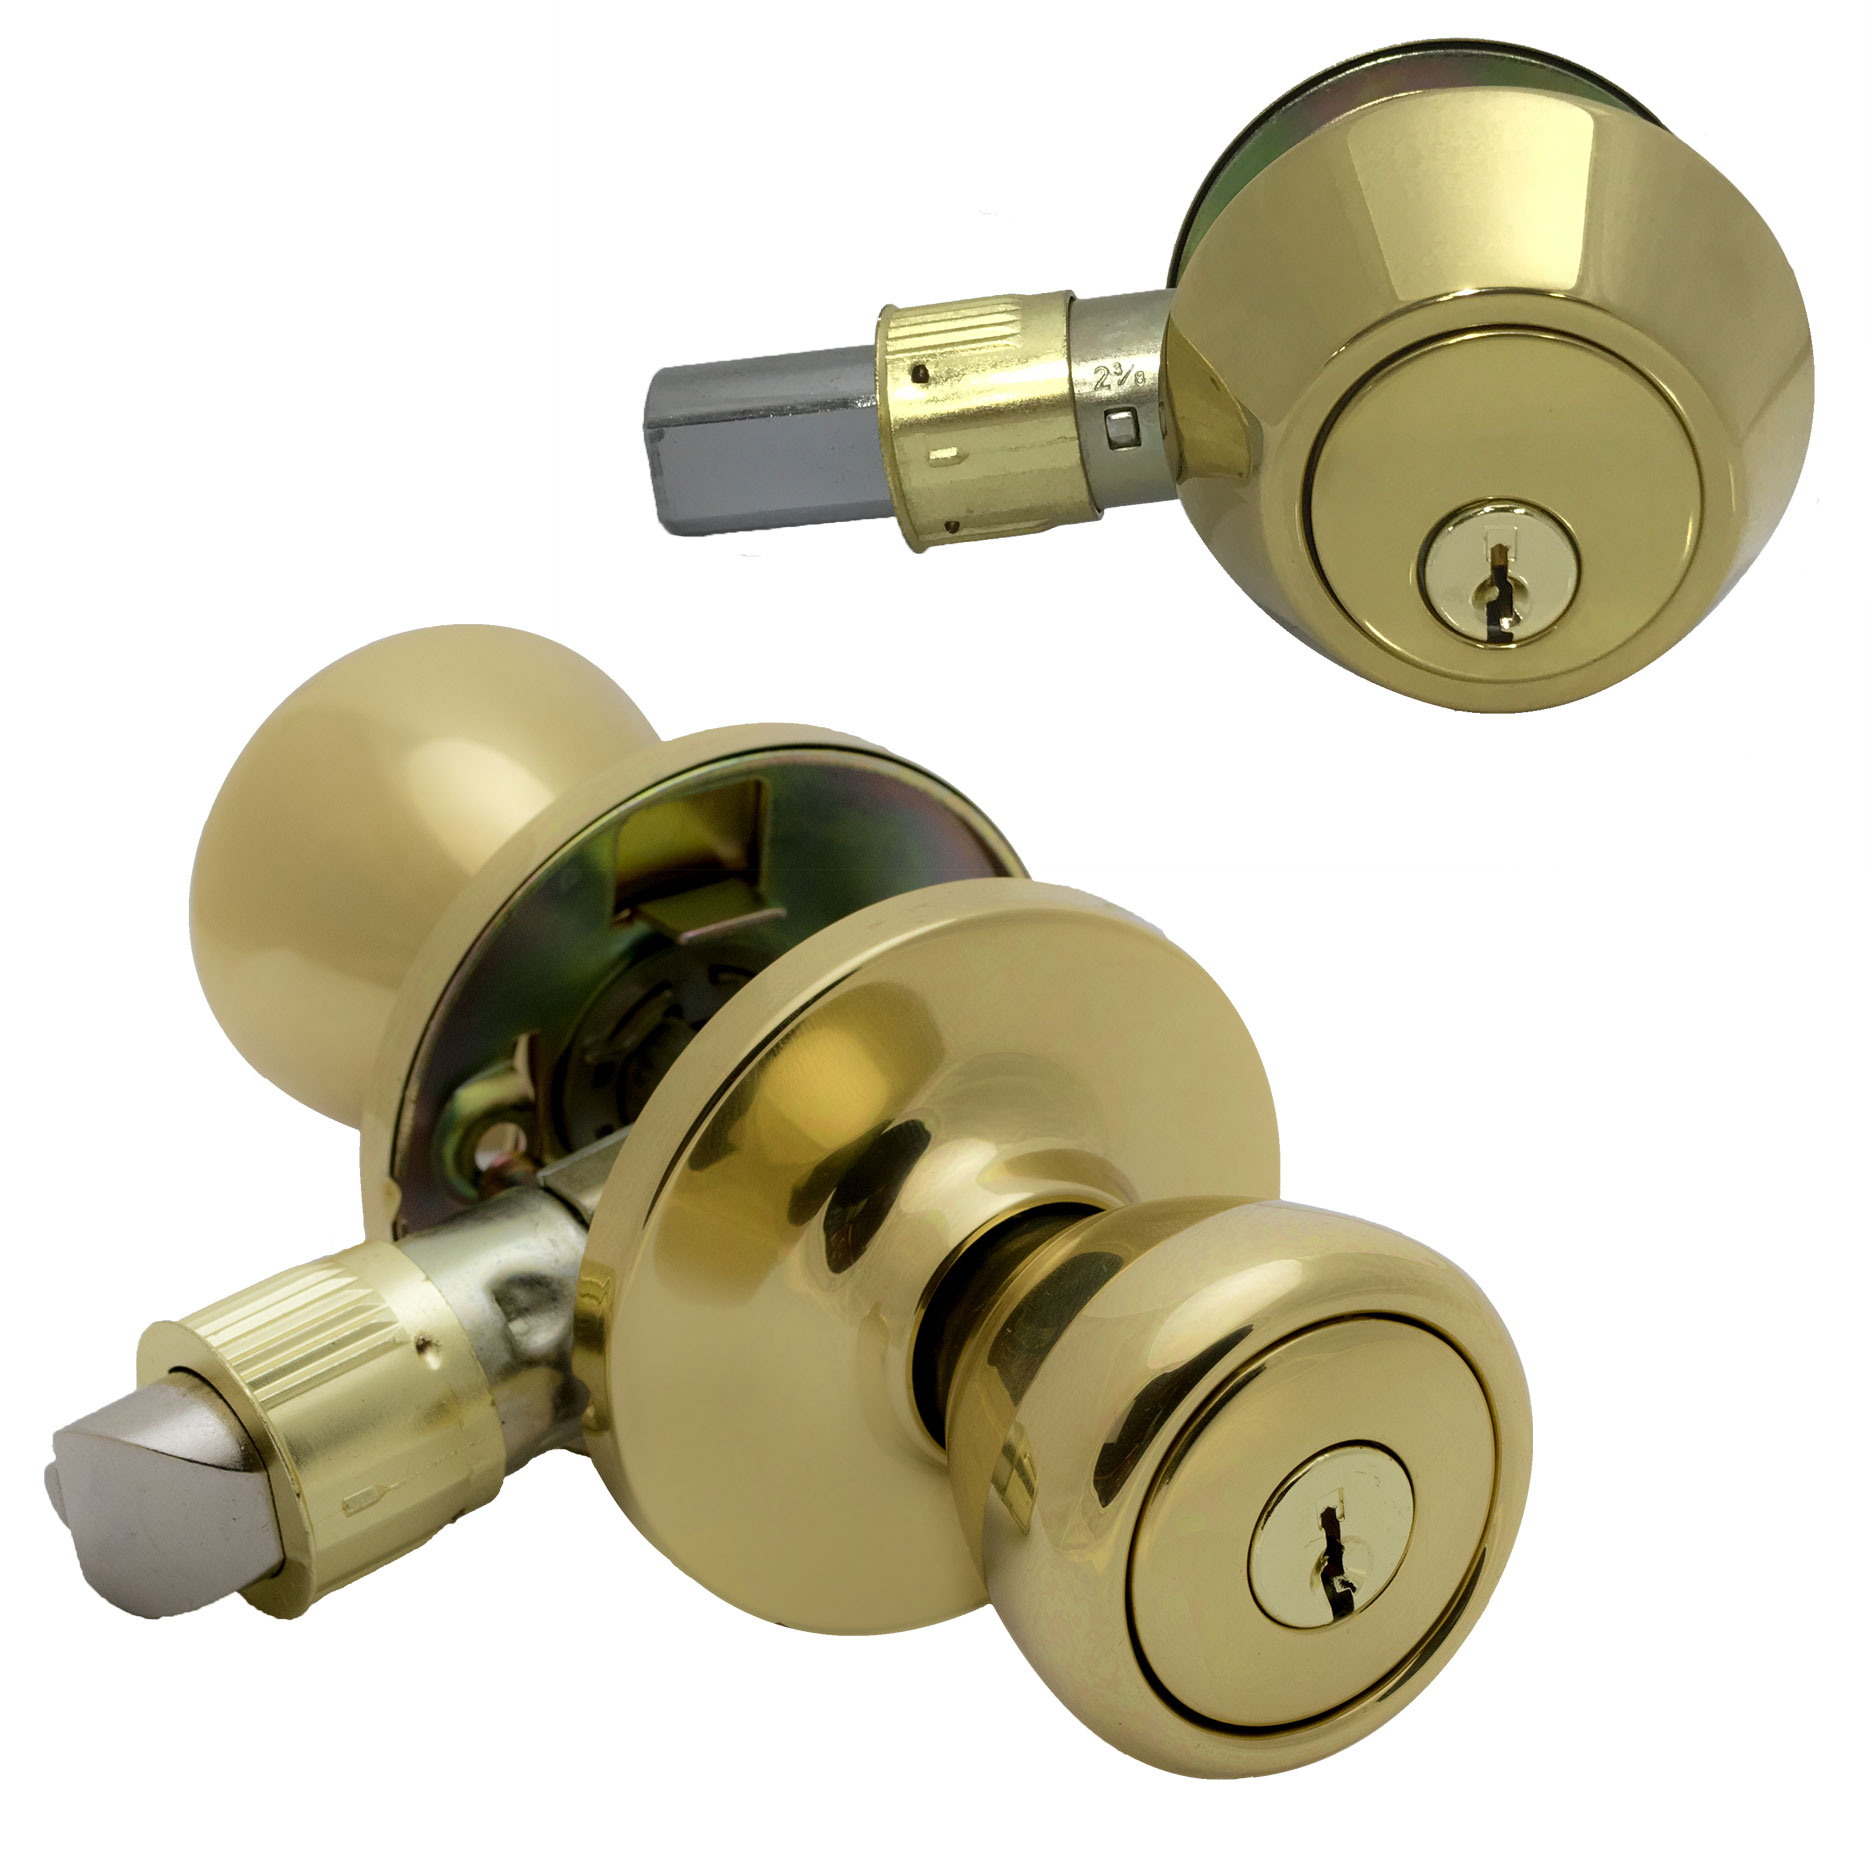 Pro Grade Classic Mobile Home Keyed Entry Door Knob And Deadbolt Combo,  Polished Brass